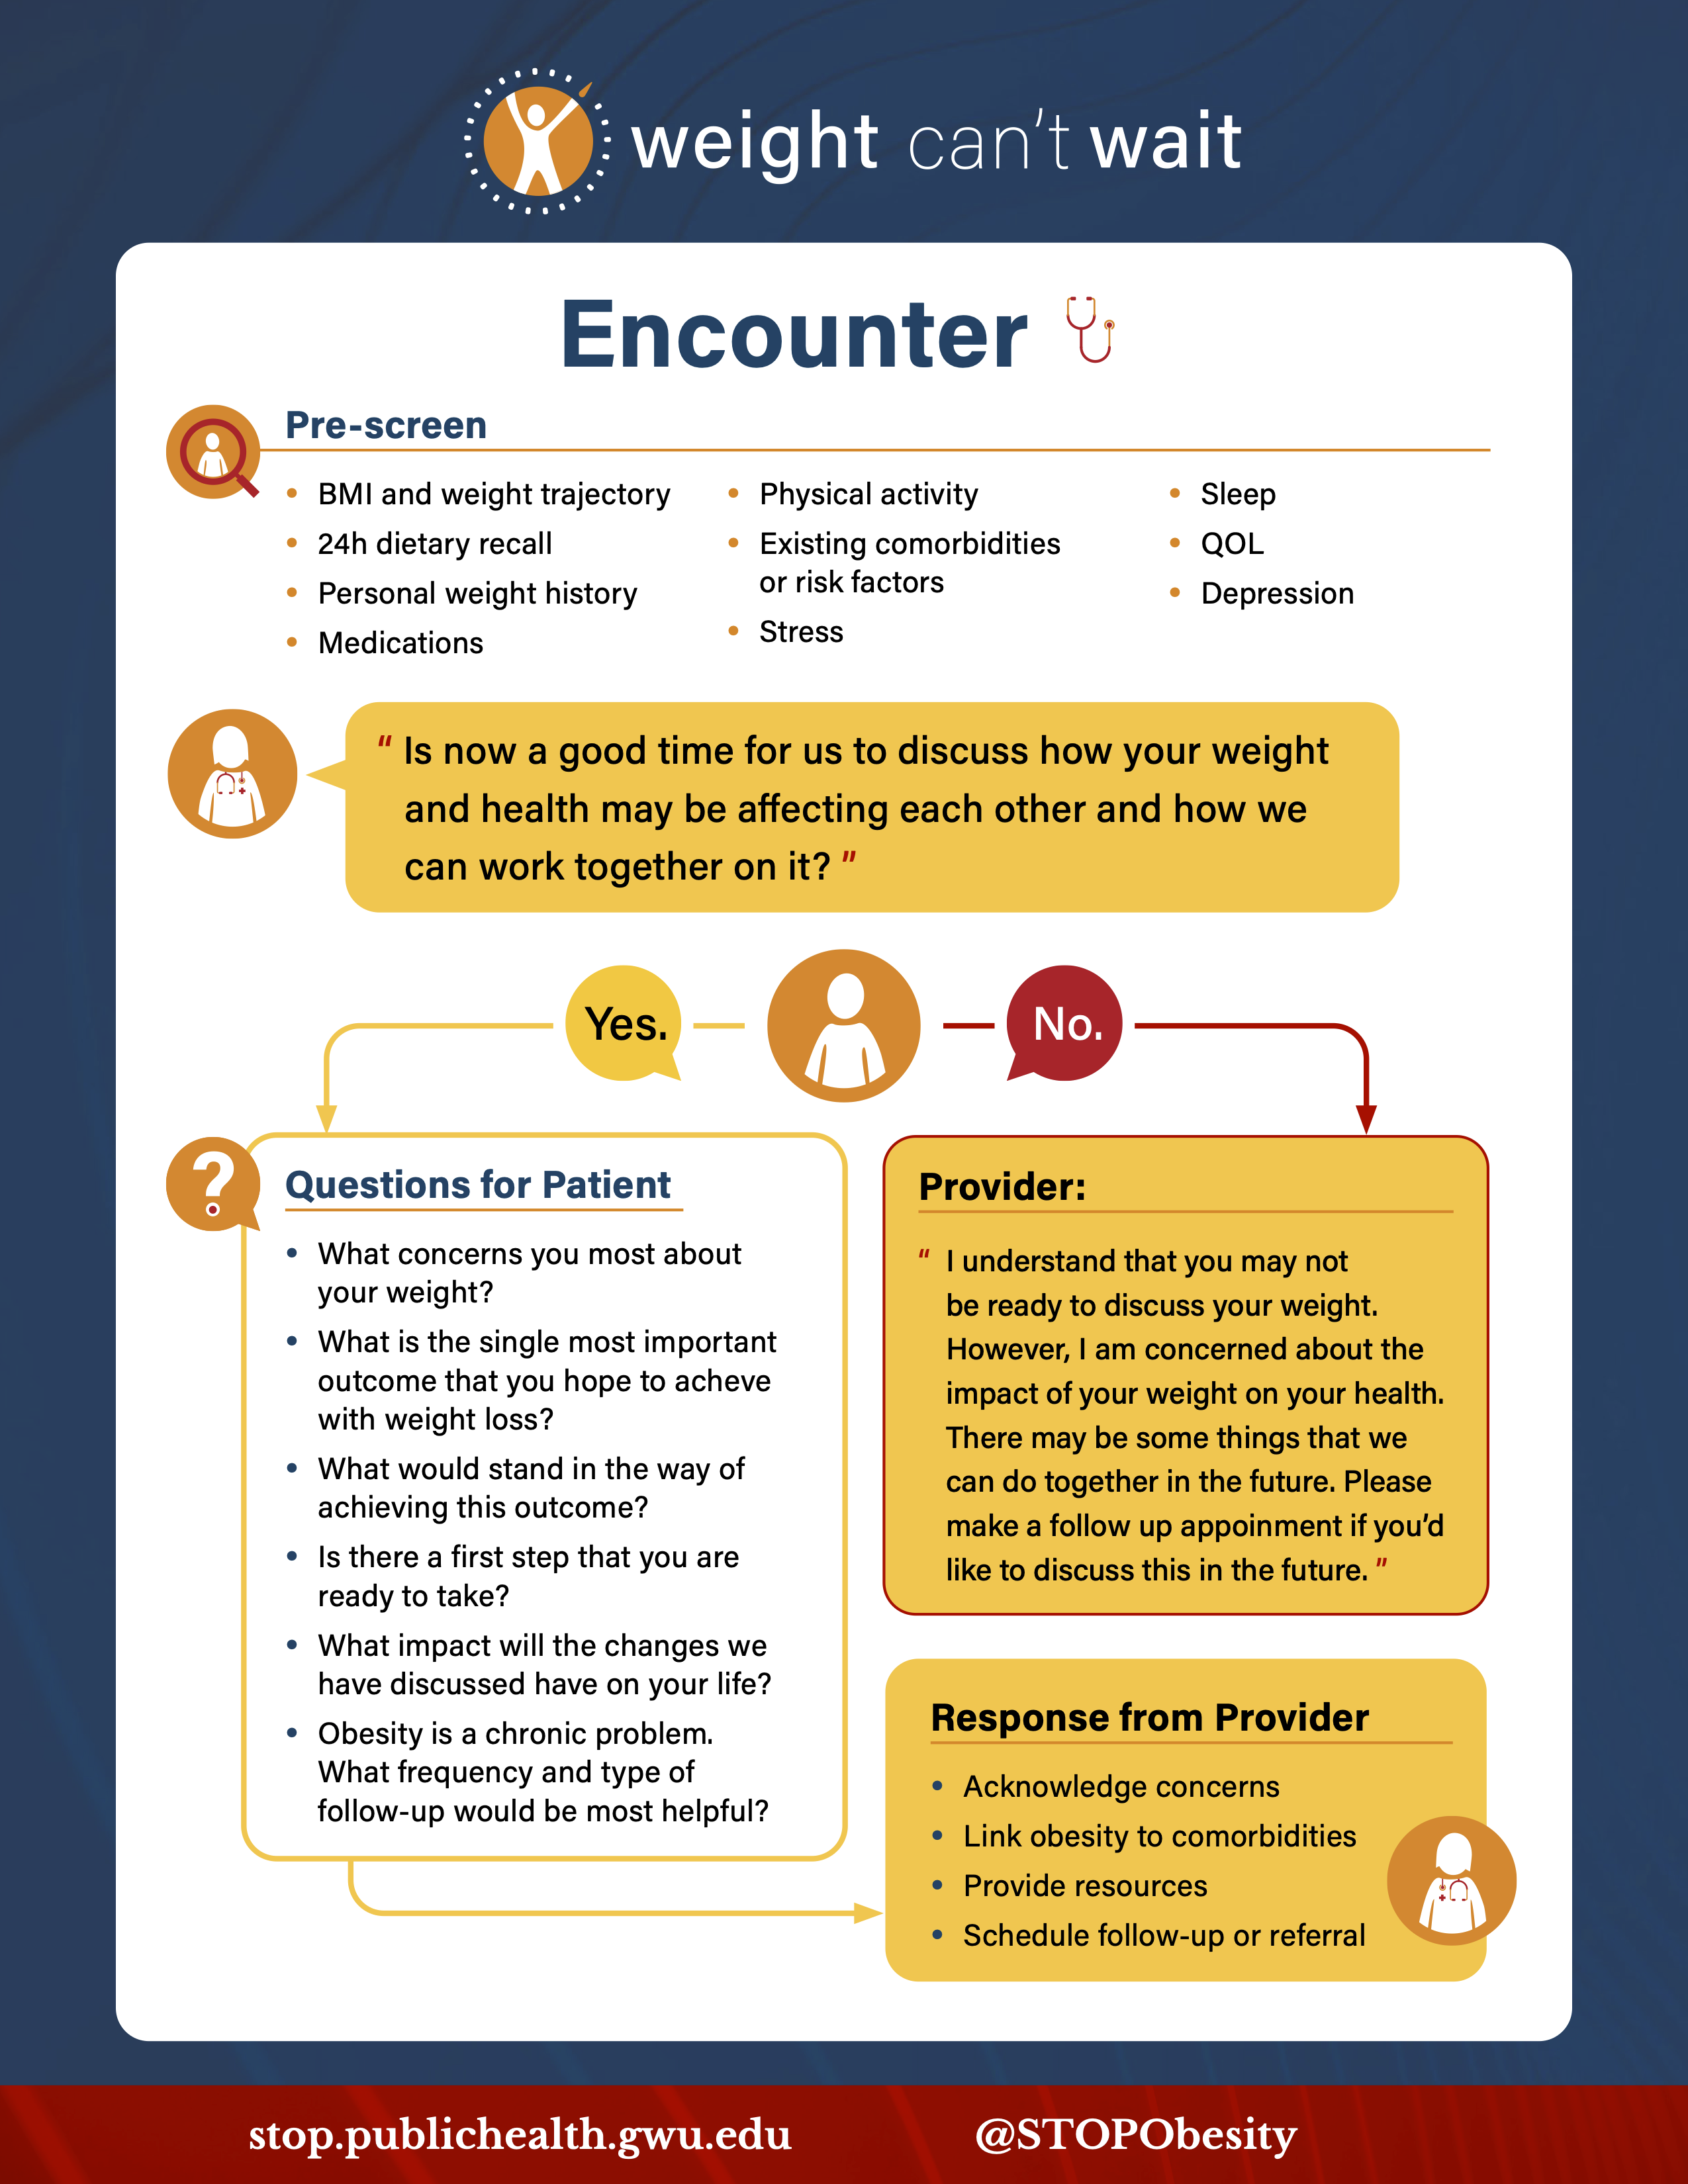 Infographic showcasing the Encounter section of the Weight Can't Wait guide. Includes pre-screening suggestions and conversation guide for primary care providers to initiate conversations about weight and health with their patients.